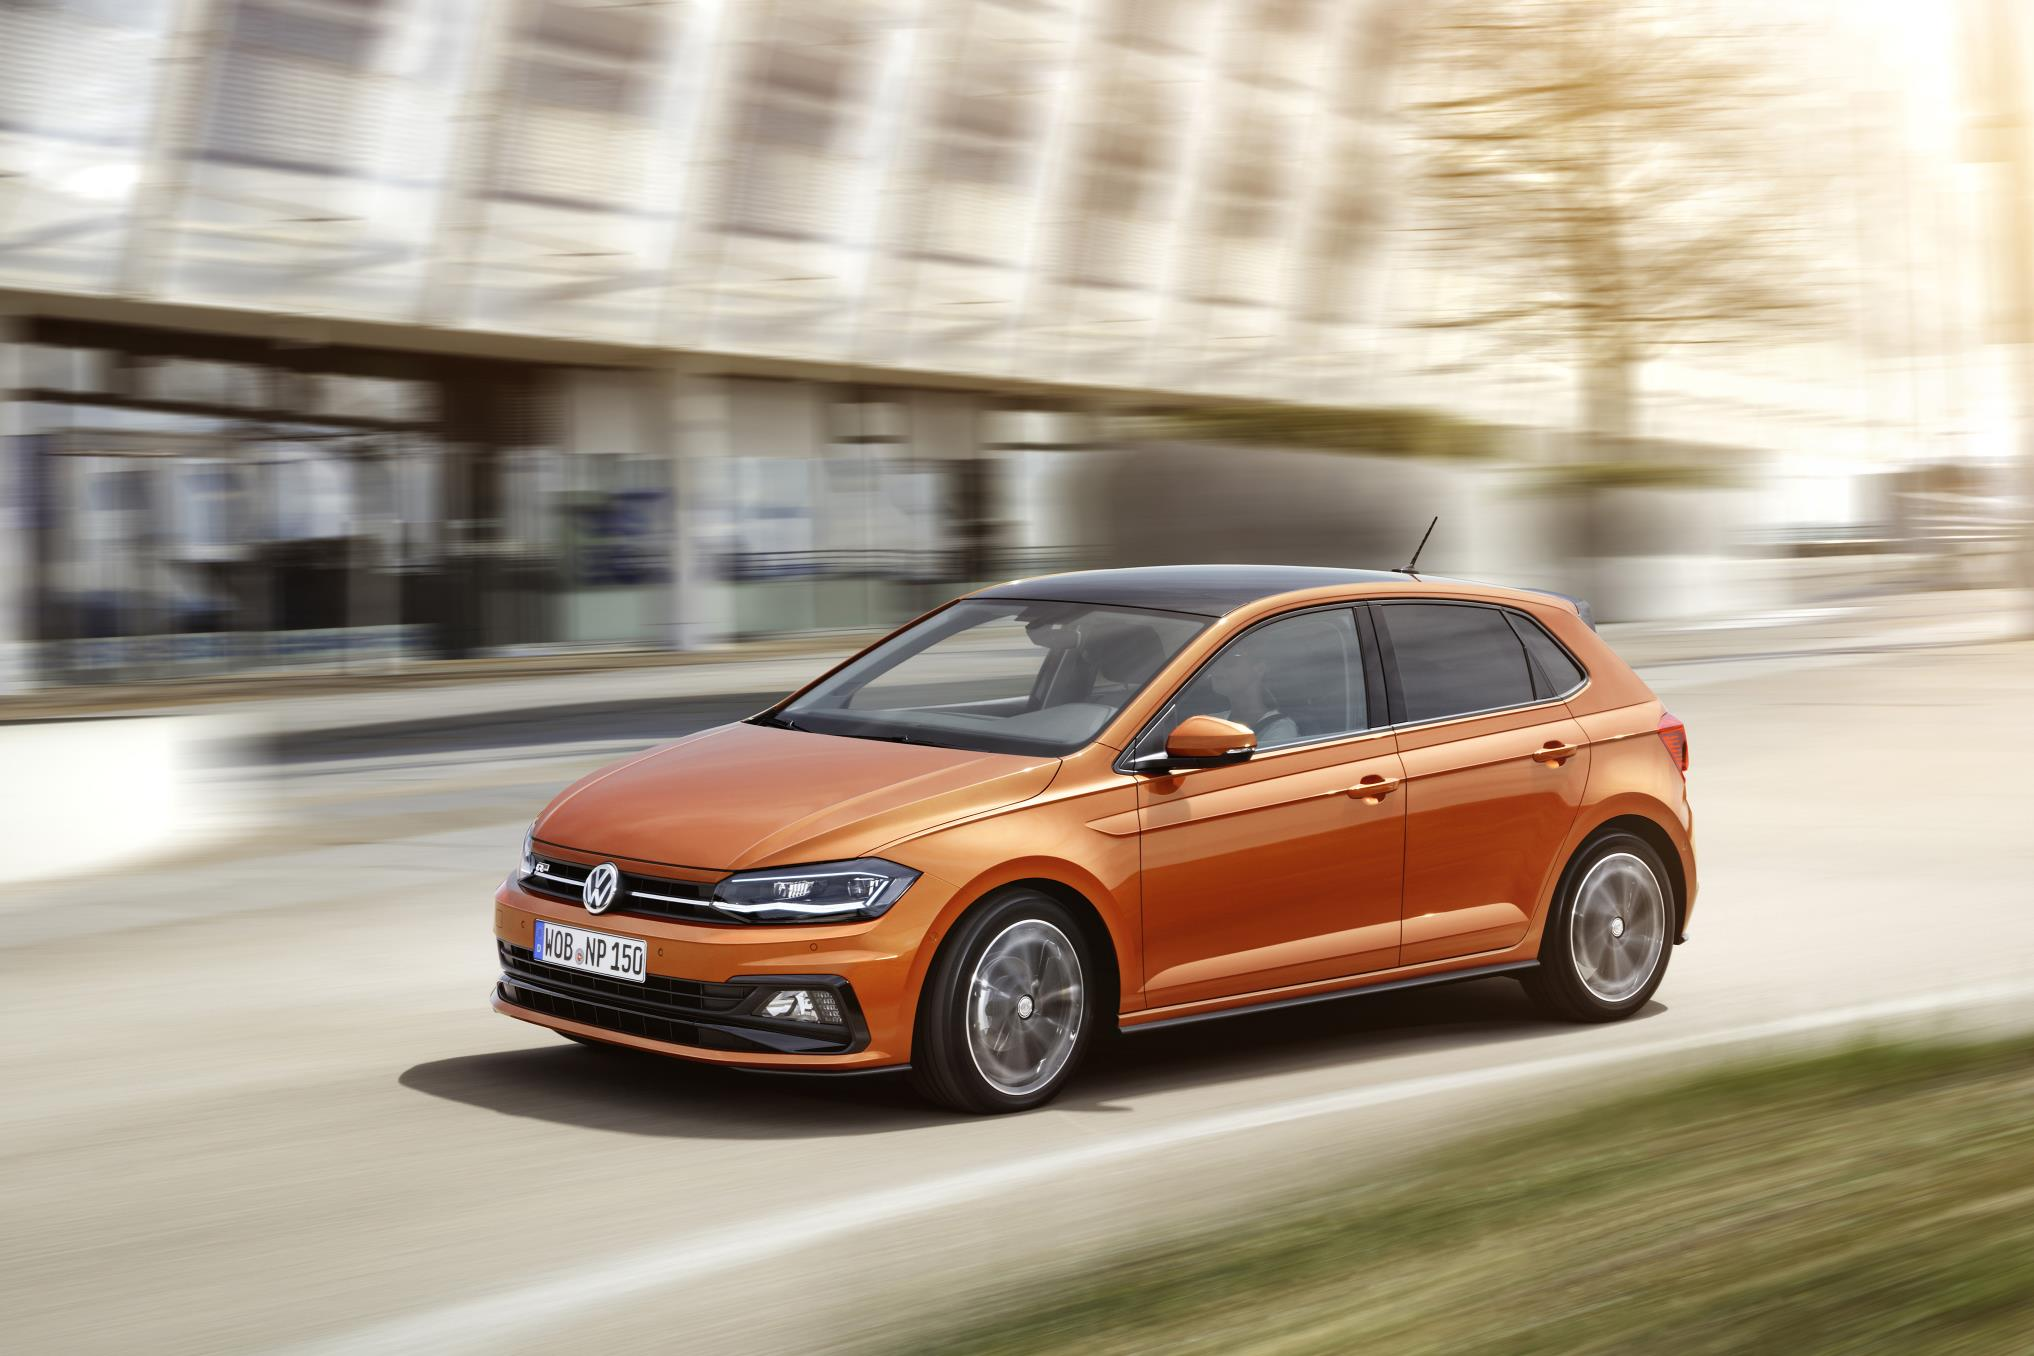 2018 Volkswagen Polo finished in orange driving